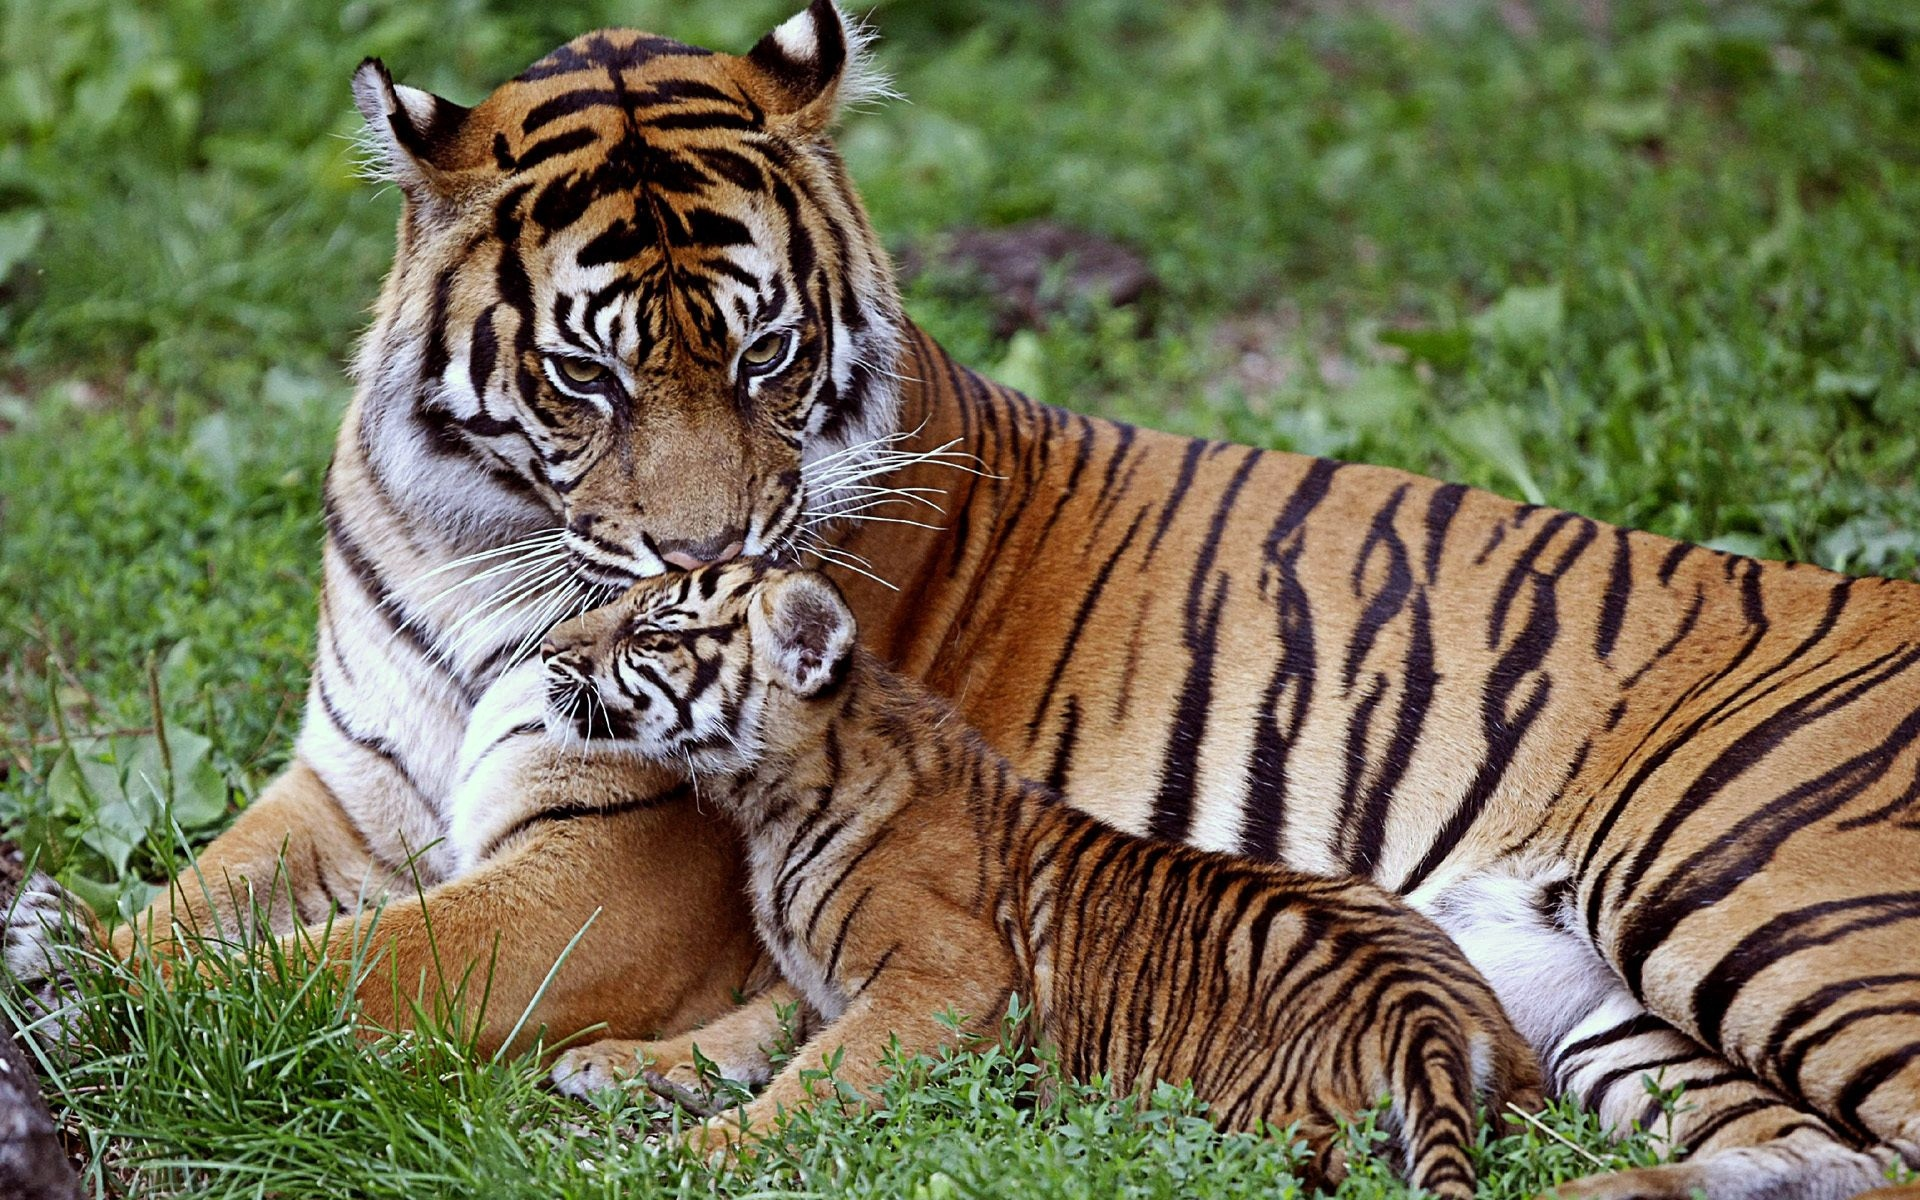 tiger cub down family care baby big cat predator x